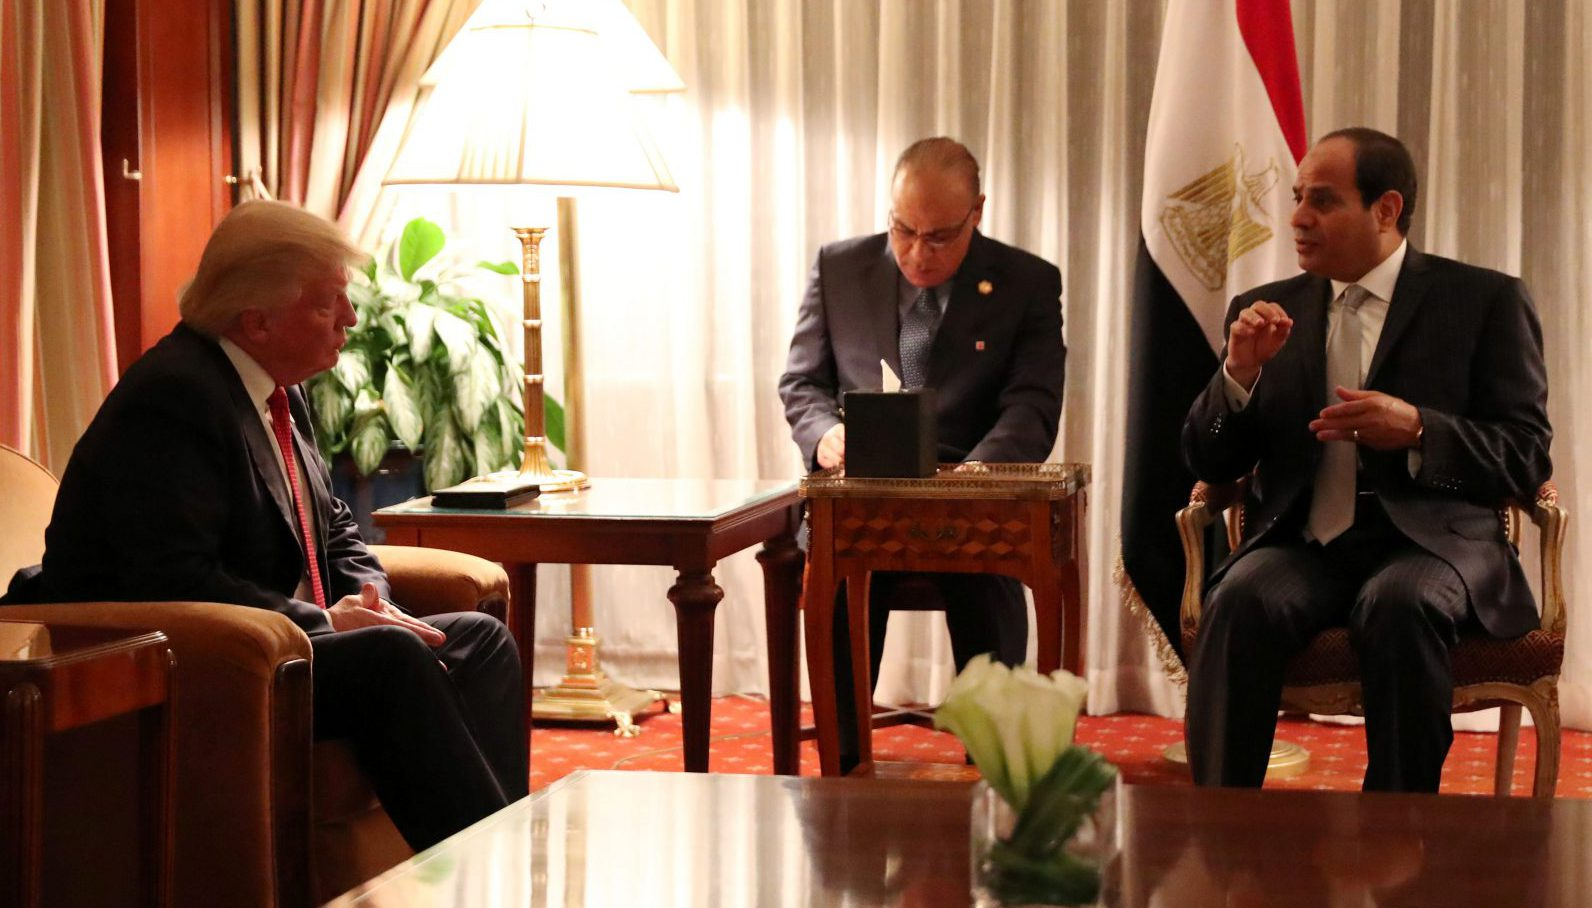 Republican presidential nominee Donald Trump holds a bilateral meeting with Egyptian President Abdel Fattah el-Sisi in Manhattan, New York, U.S., September 19, 2016.